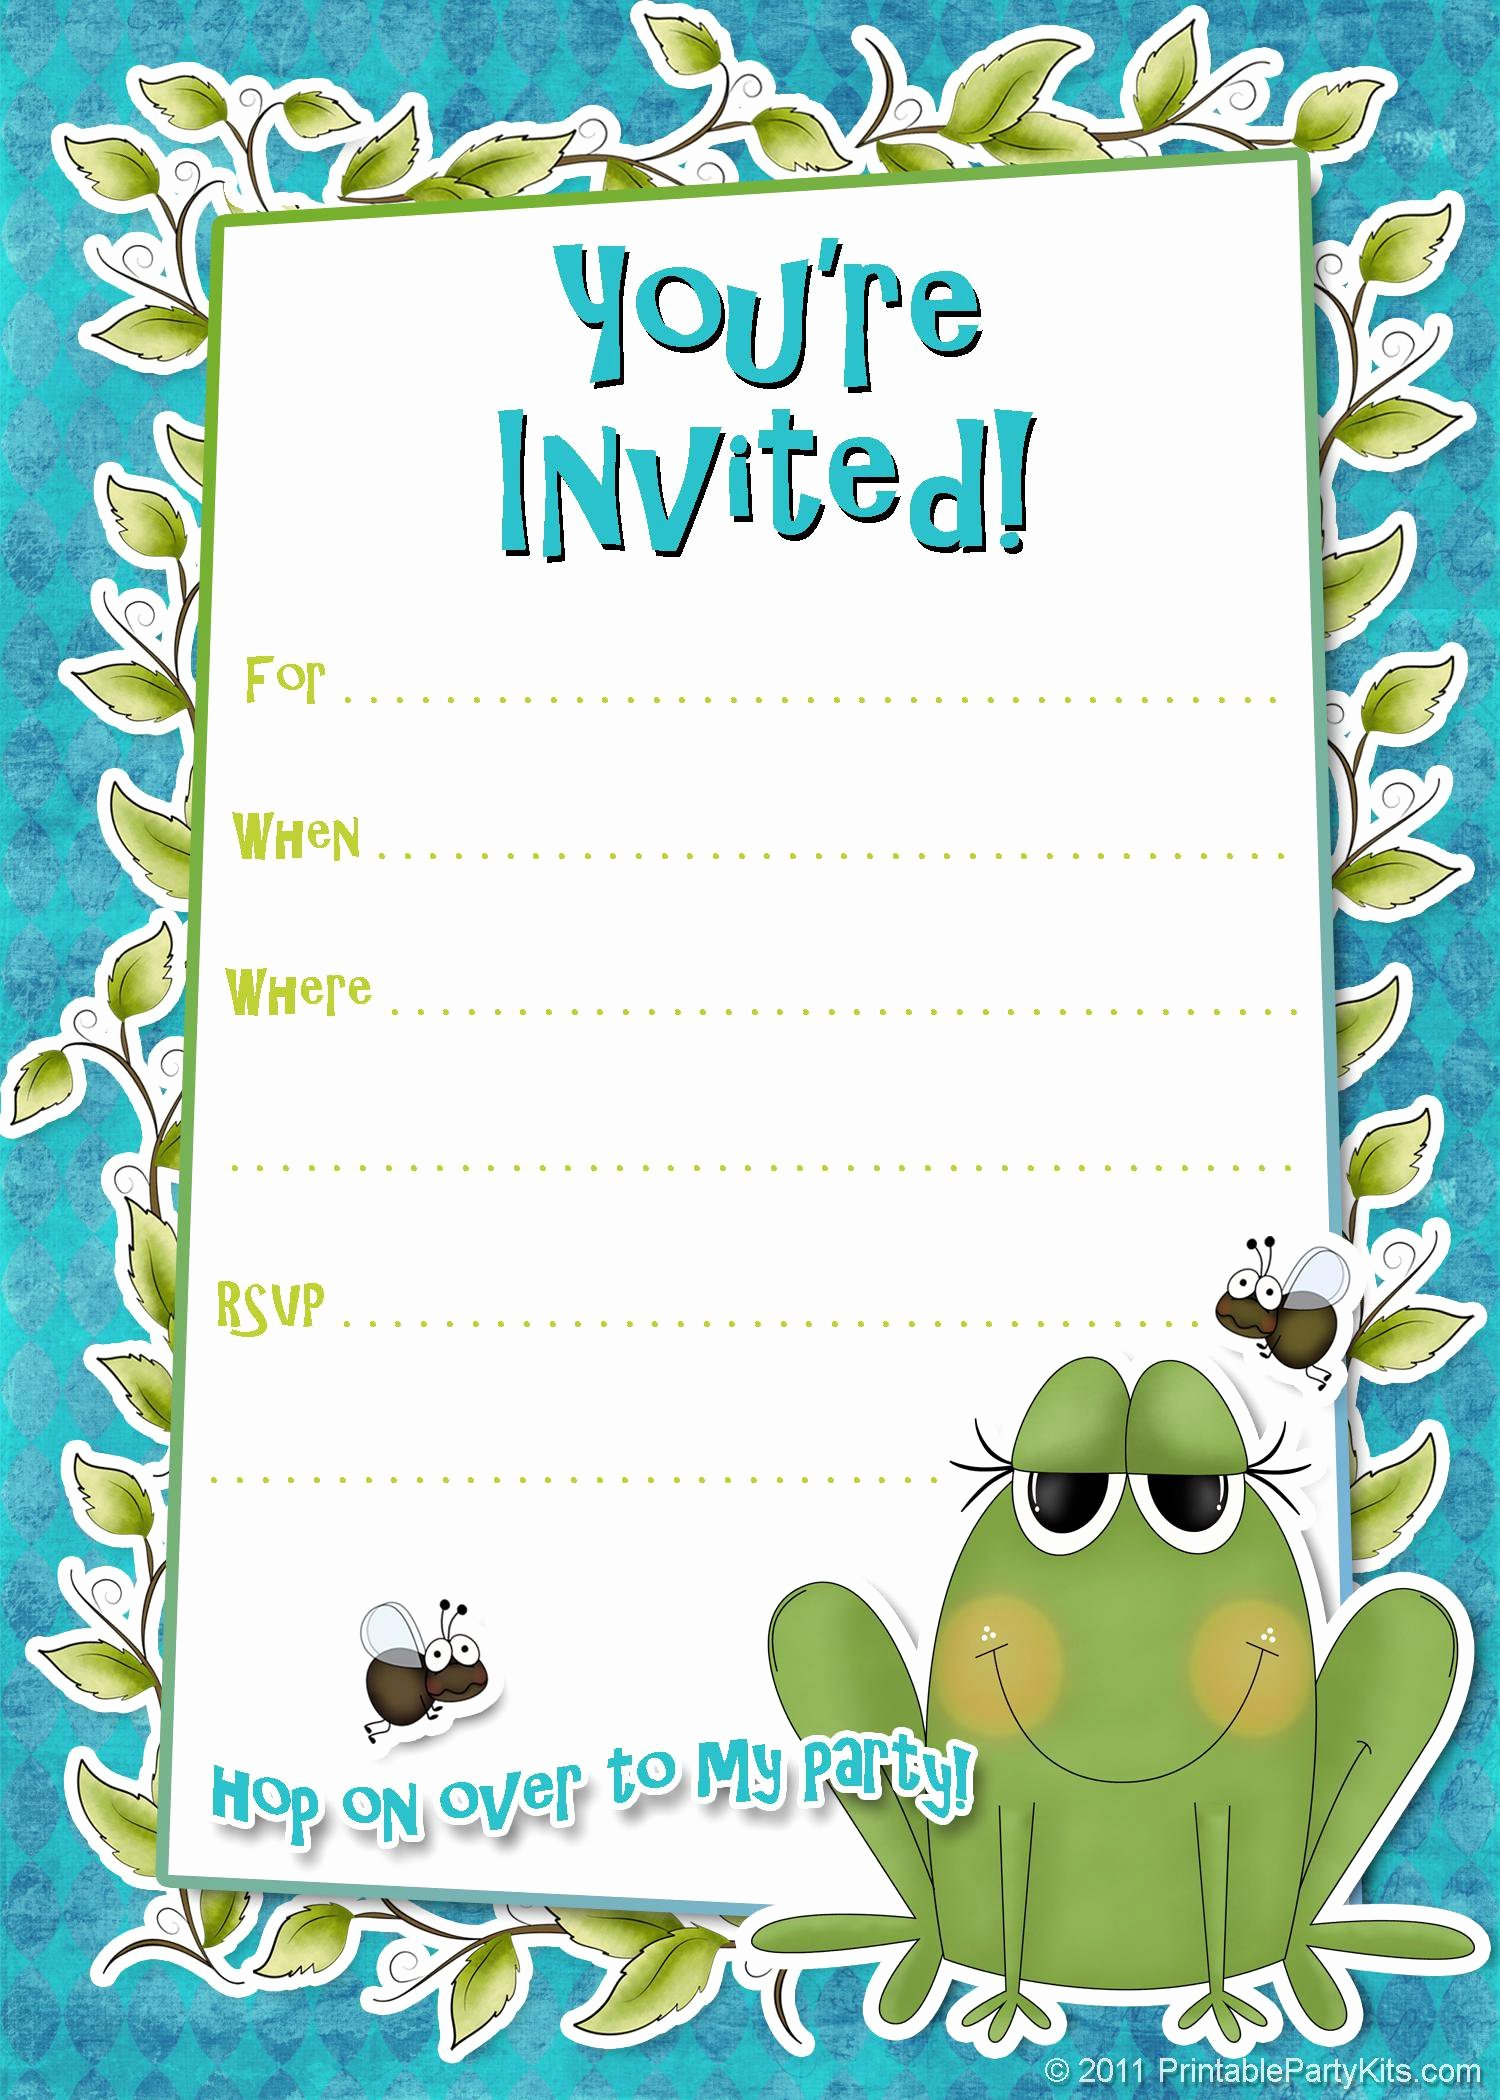 Word Template for Invitations Beautiful Birthday Party Invitation Template Birthday Party